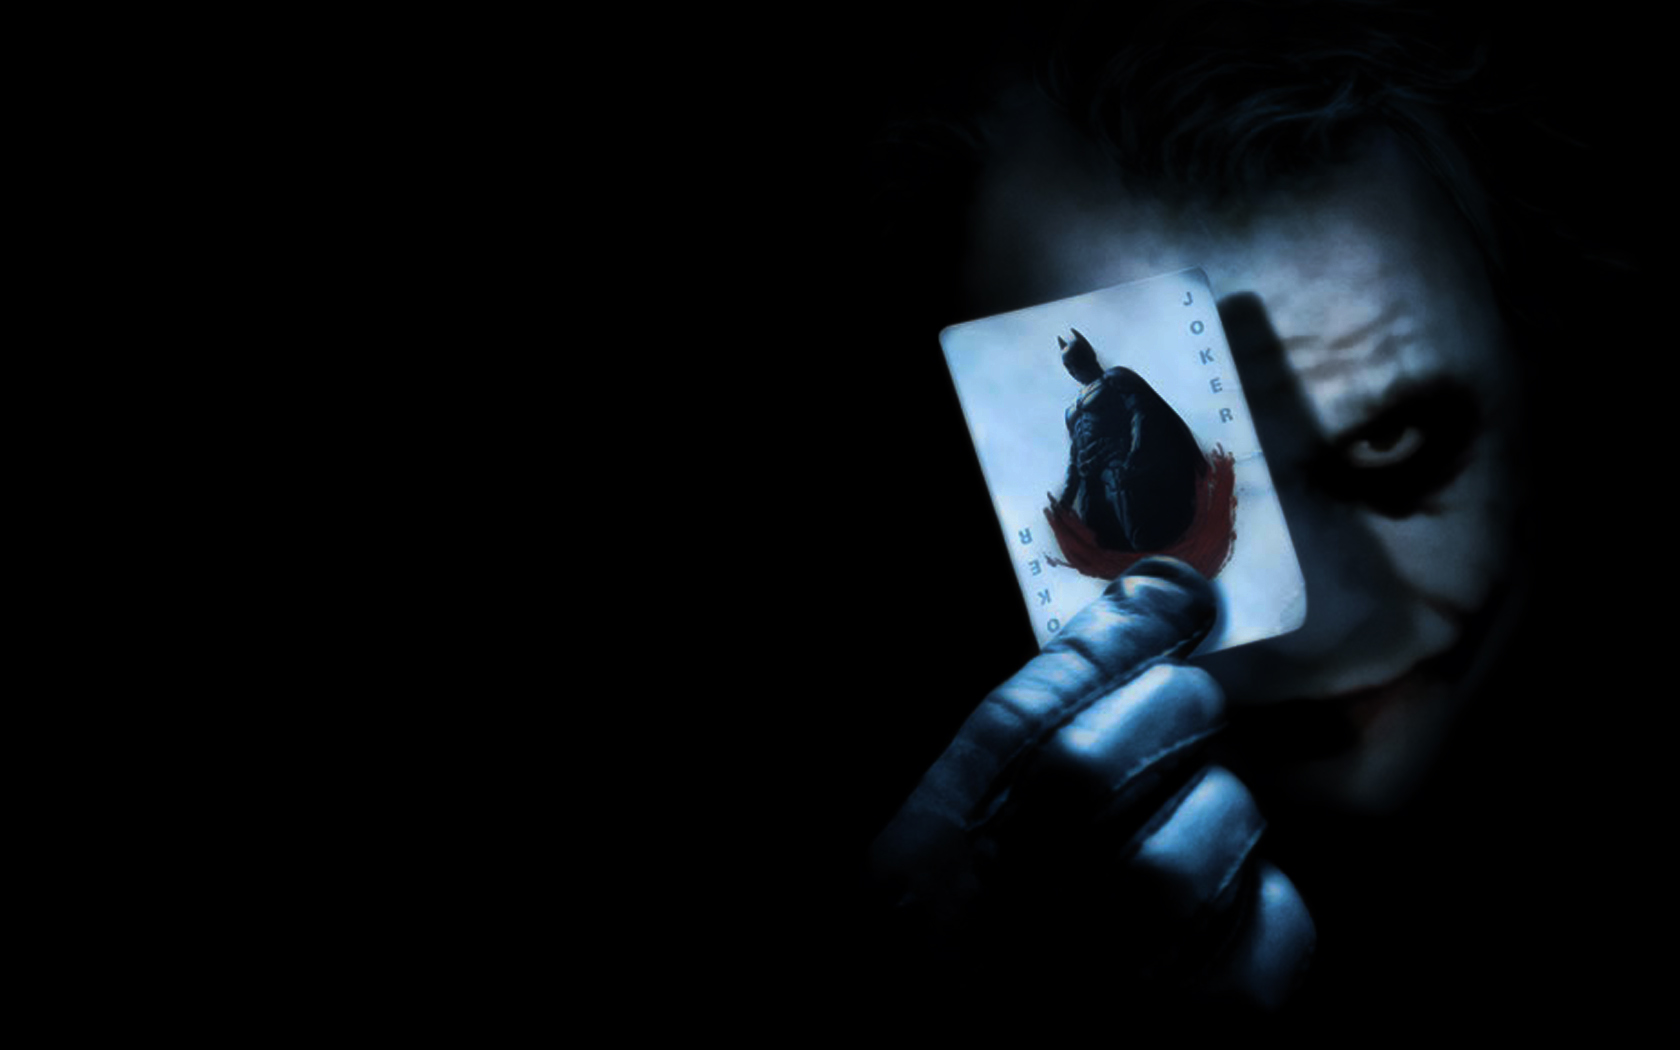 Batman desktop image Batman wallpapers 1680x1050